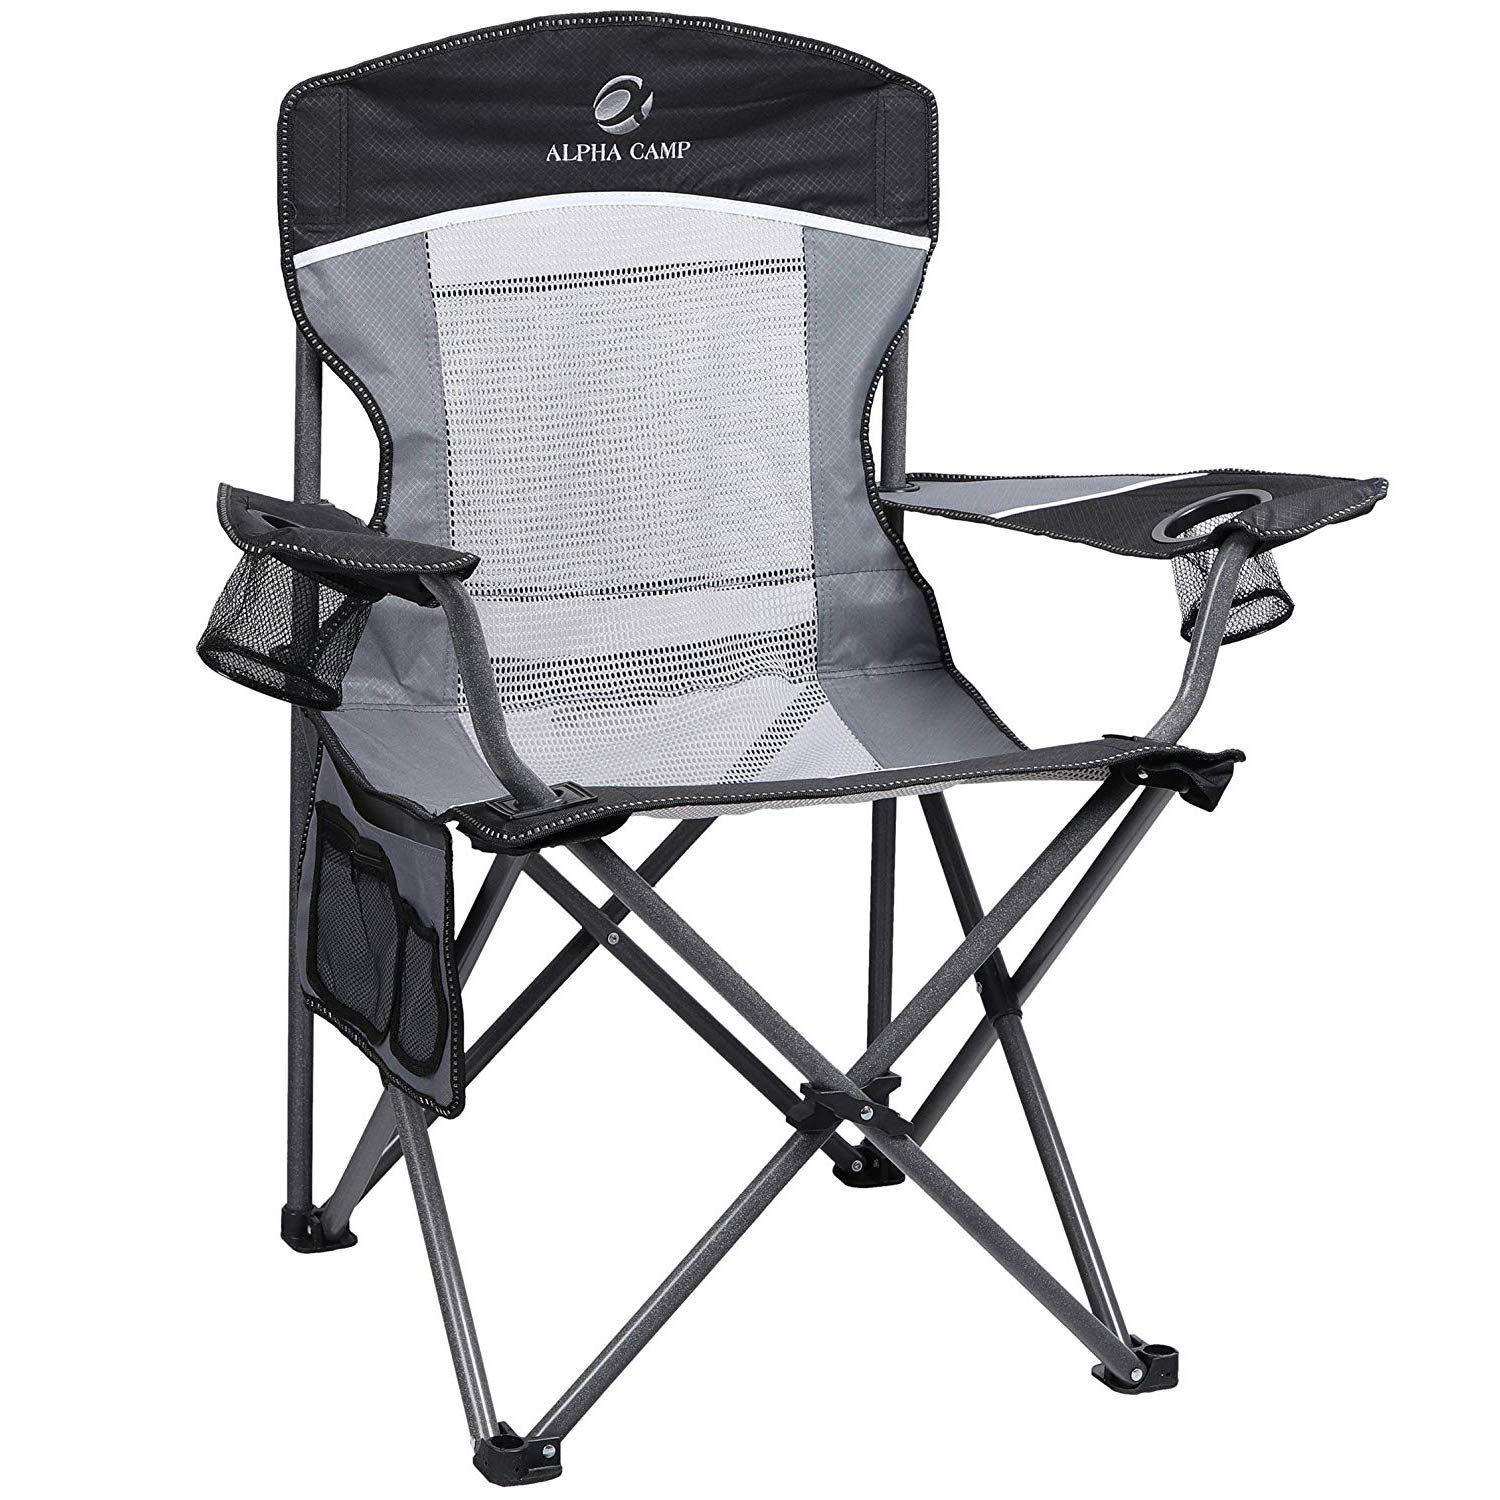 Admirable Alpha Camp Oversized Mesh Back Camping Folding Chair Heavy Duty Support 350 Lbs Collapsible Steel Frame Quad Chair Padded Arm Chair With Cup Holder Dailytribune Chair Design For Home Dailytribuneorg